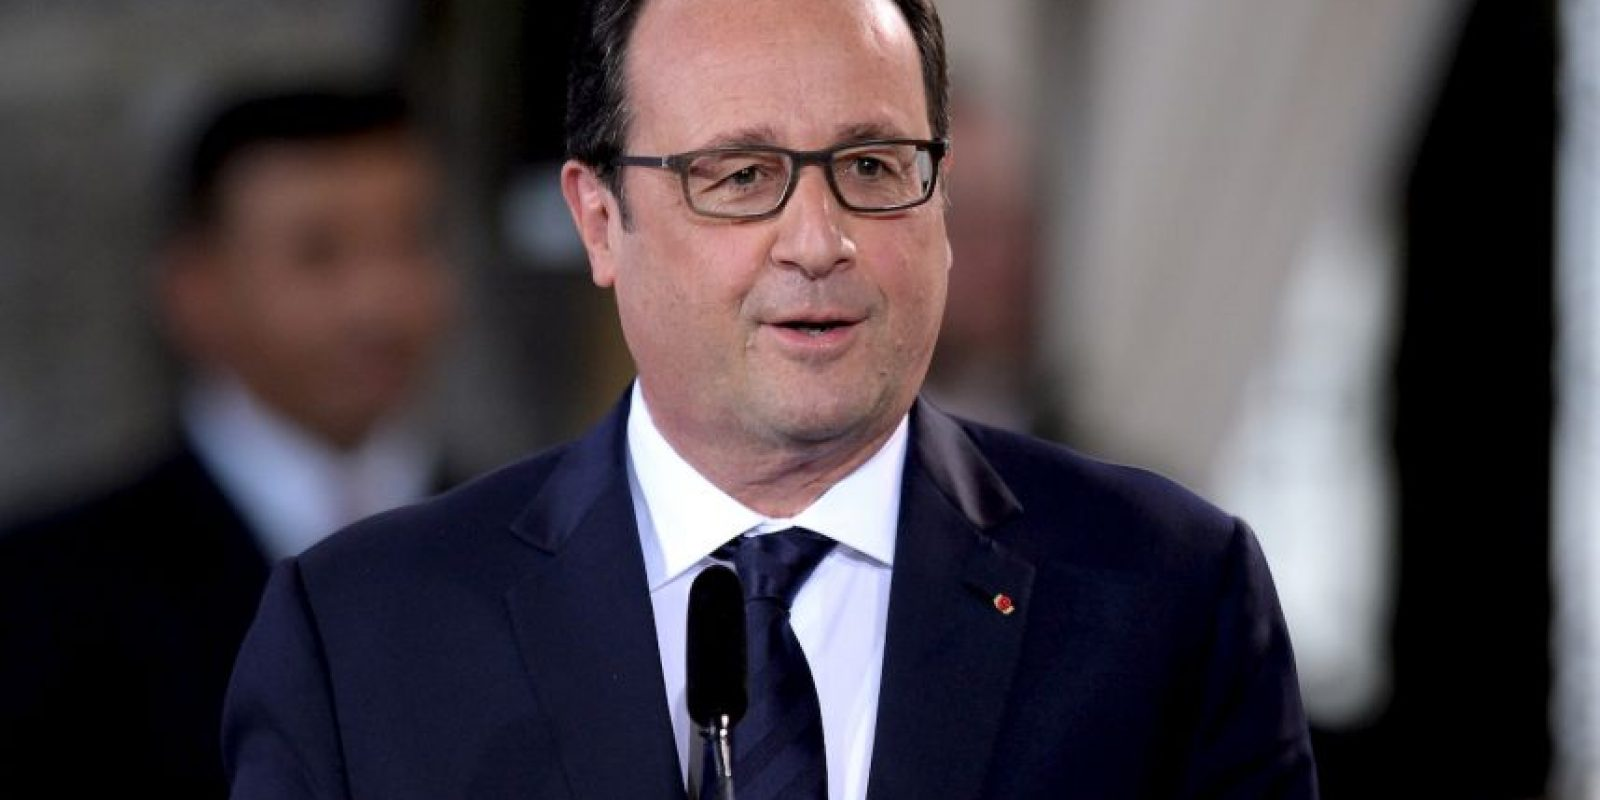 François Hollande, presidente de Francia. Foto: Getty Images